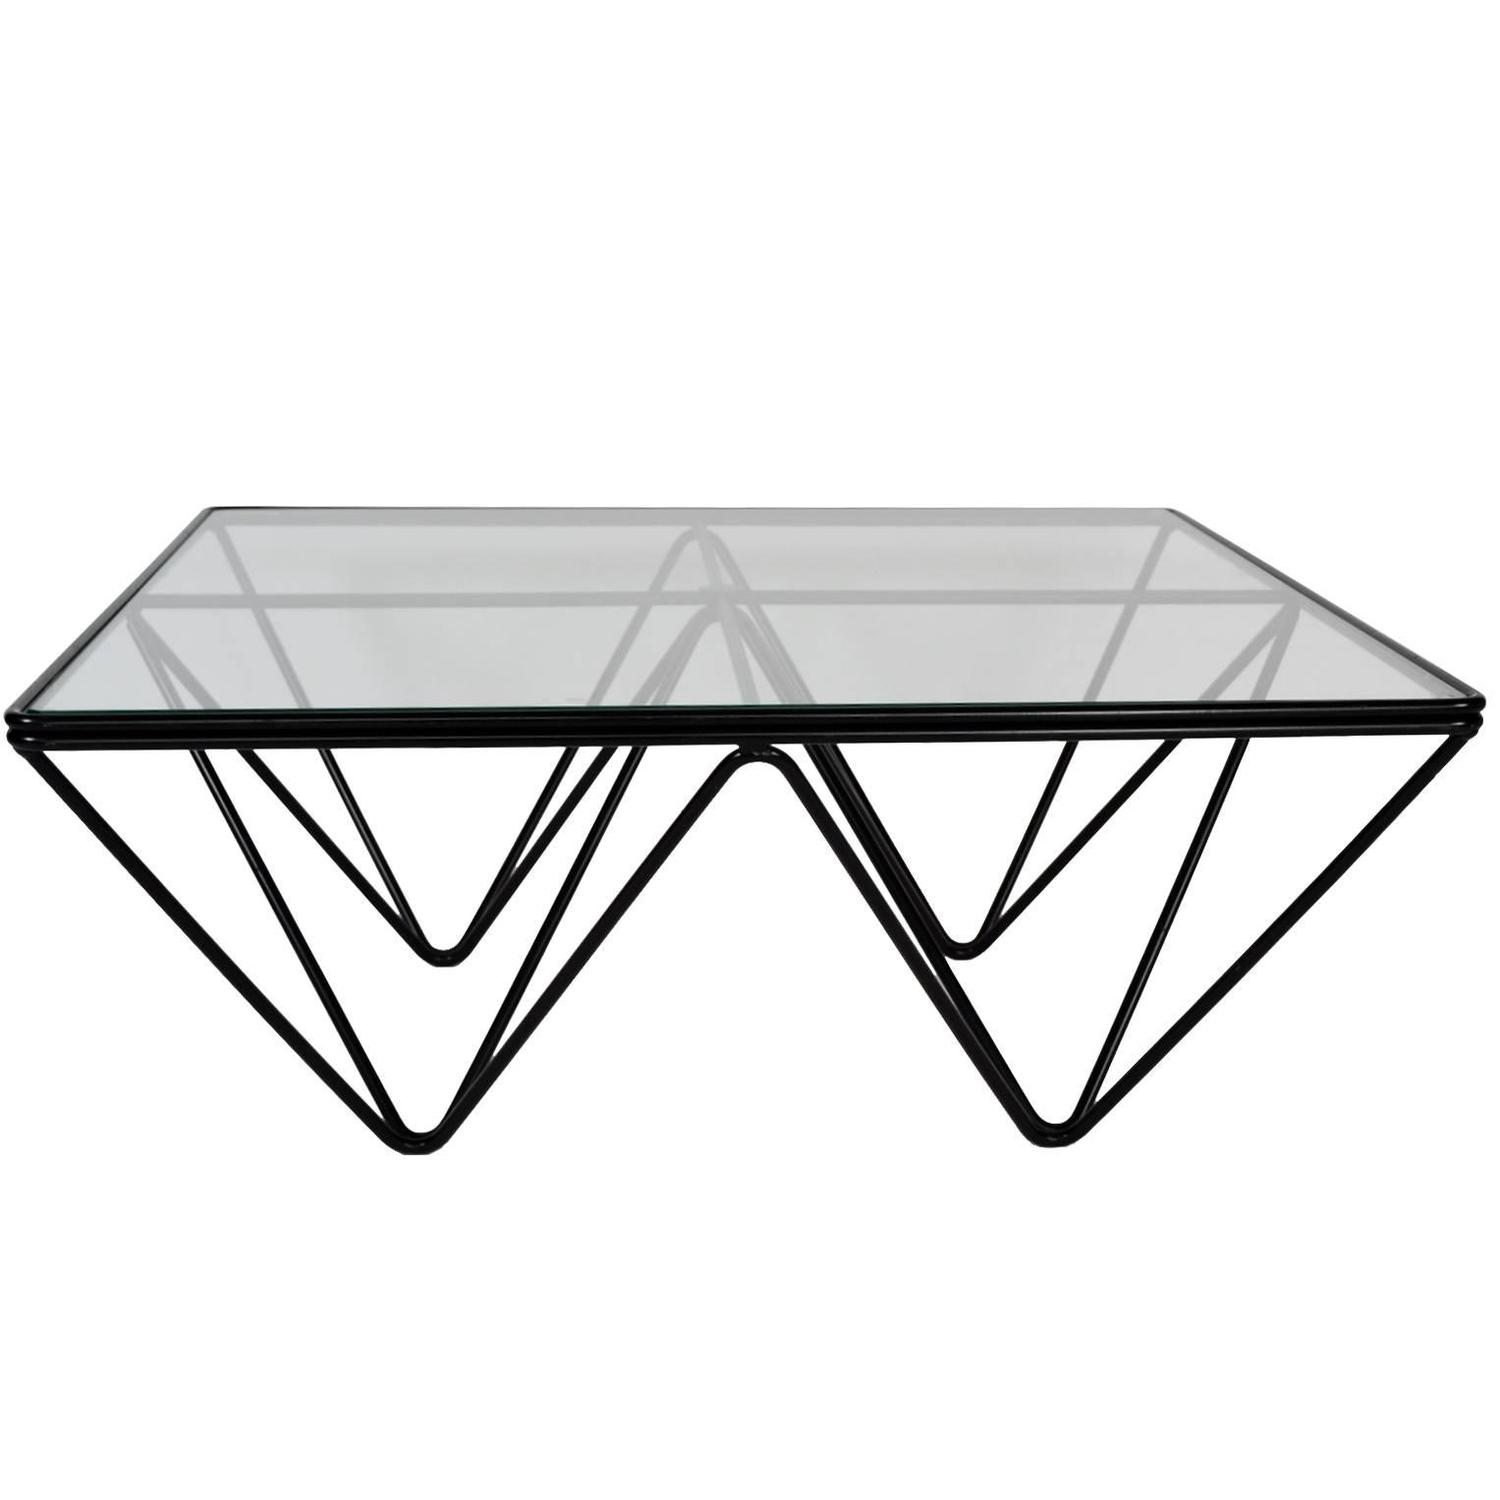 Alanda Square Coffee Table in the style of Paolo Piva for B&B